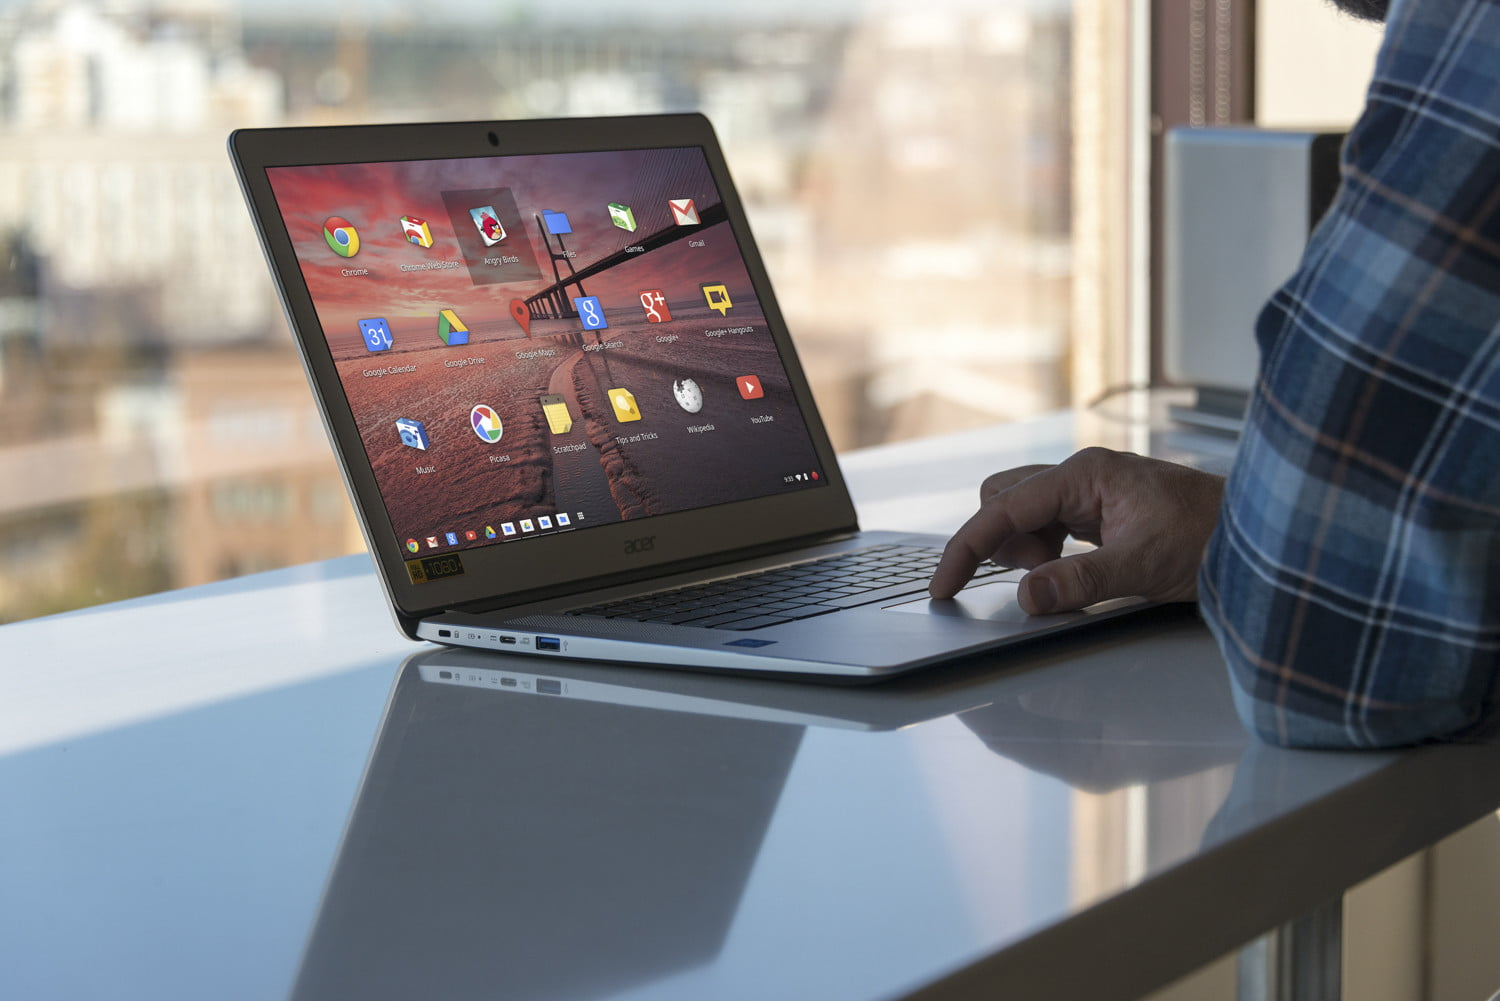 How to Zip and Unzip Files on a Chromebook | Digital Trends